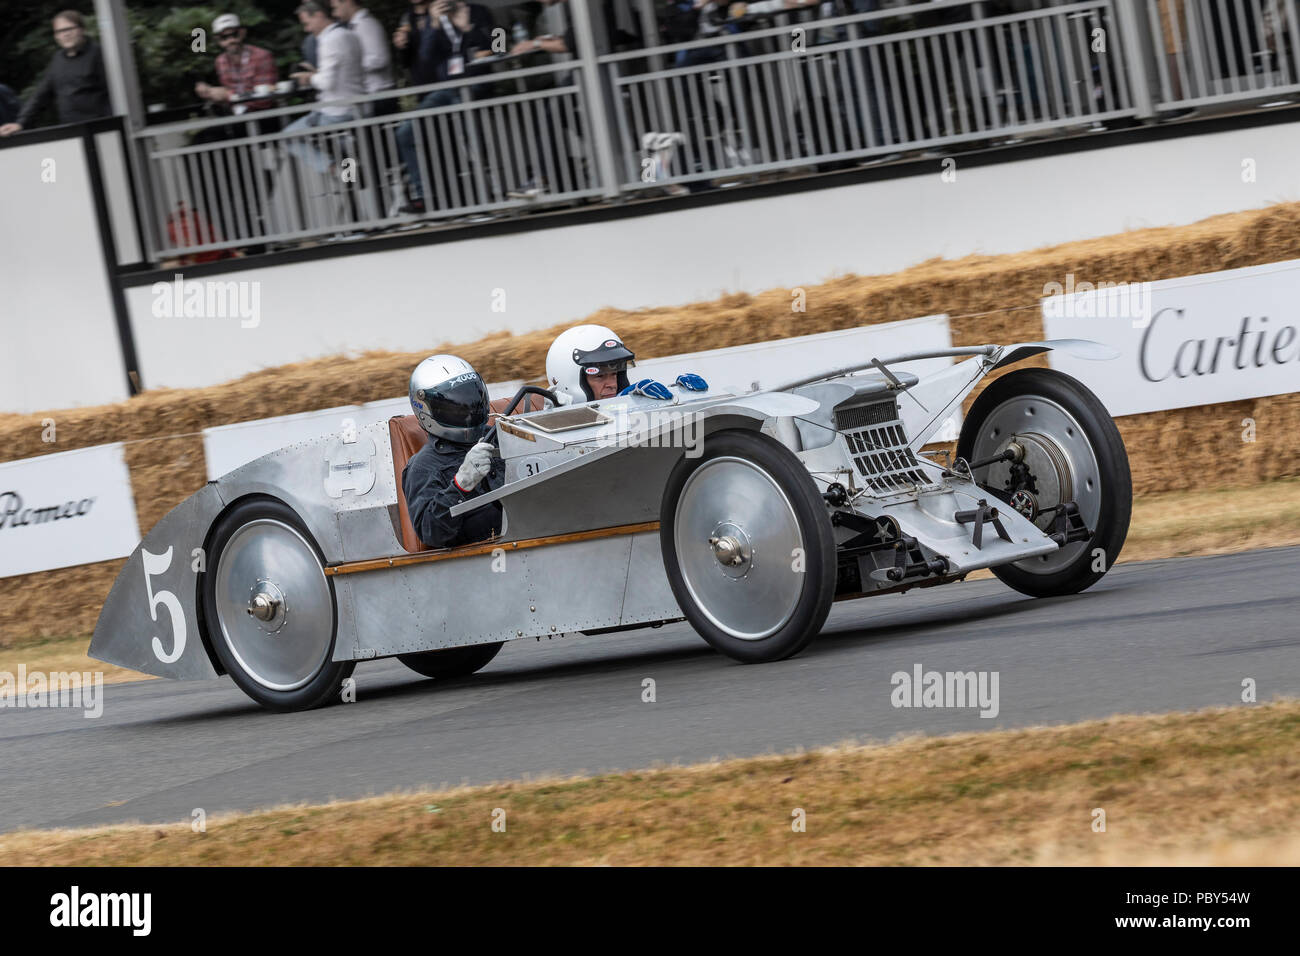 1923 Avions Voisin C6 Laboratoire, the first monocoque racing car, with driver Philipp Moch at the 2018 Goodwood Festival of Speed, Sussex, UK. - Stock Image